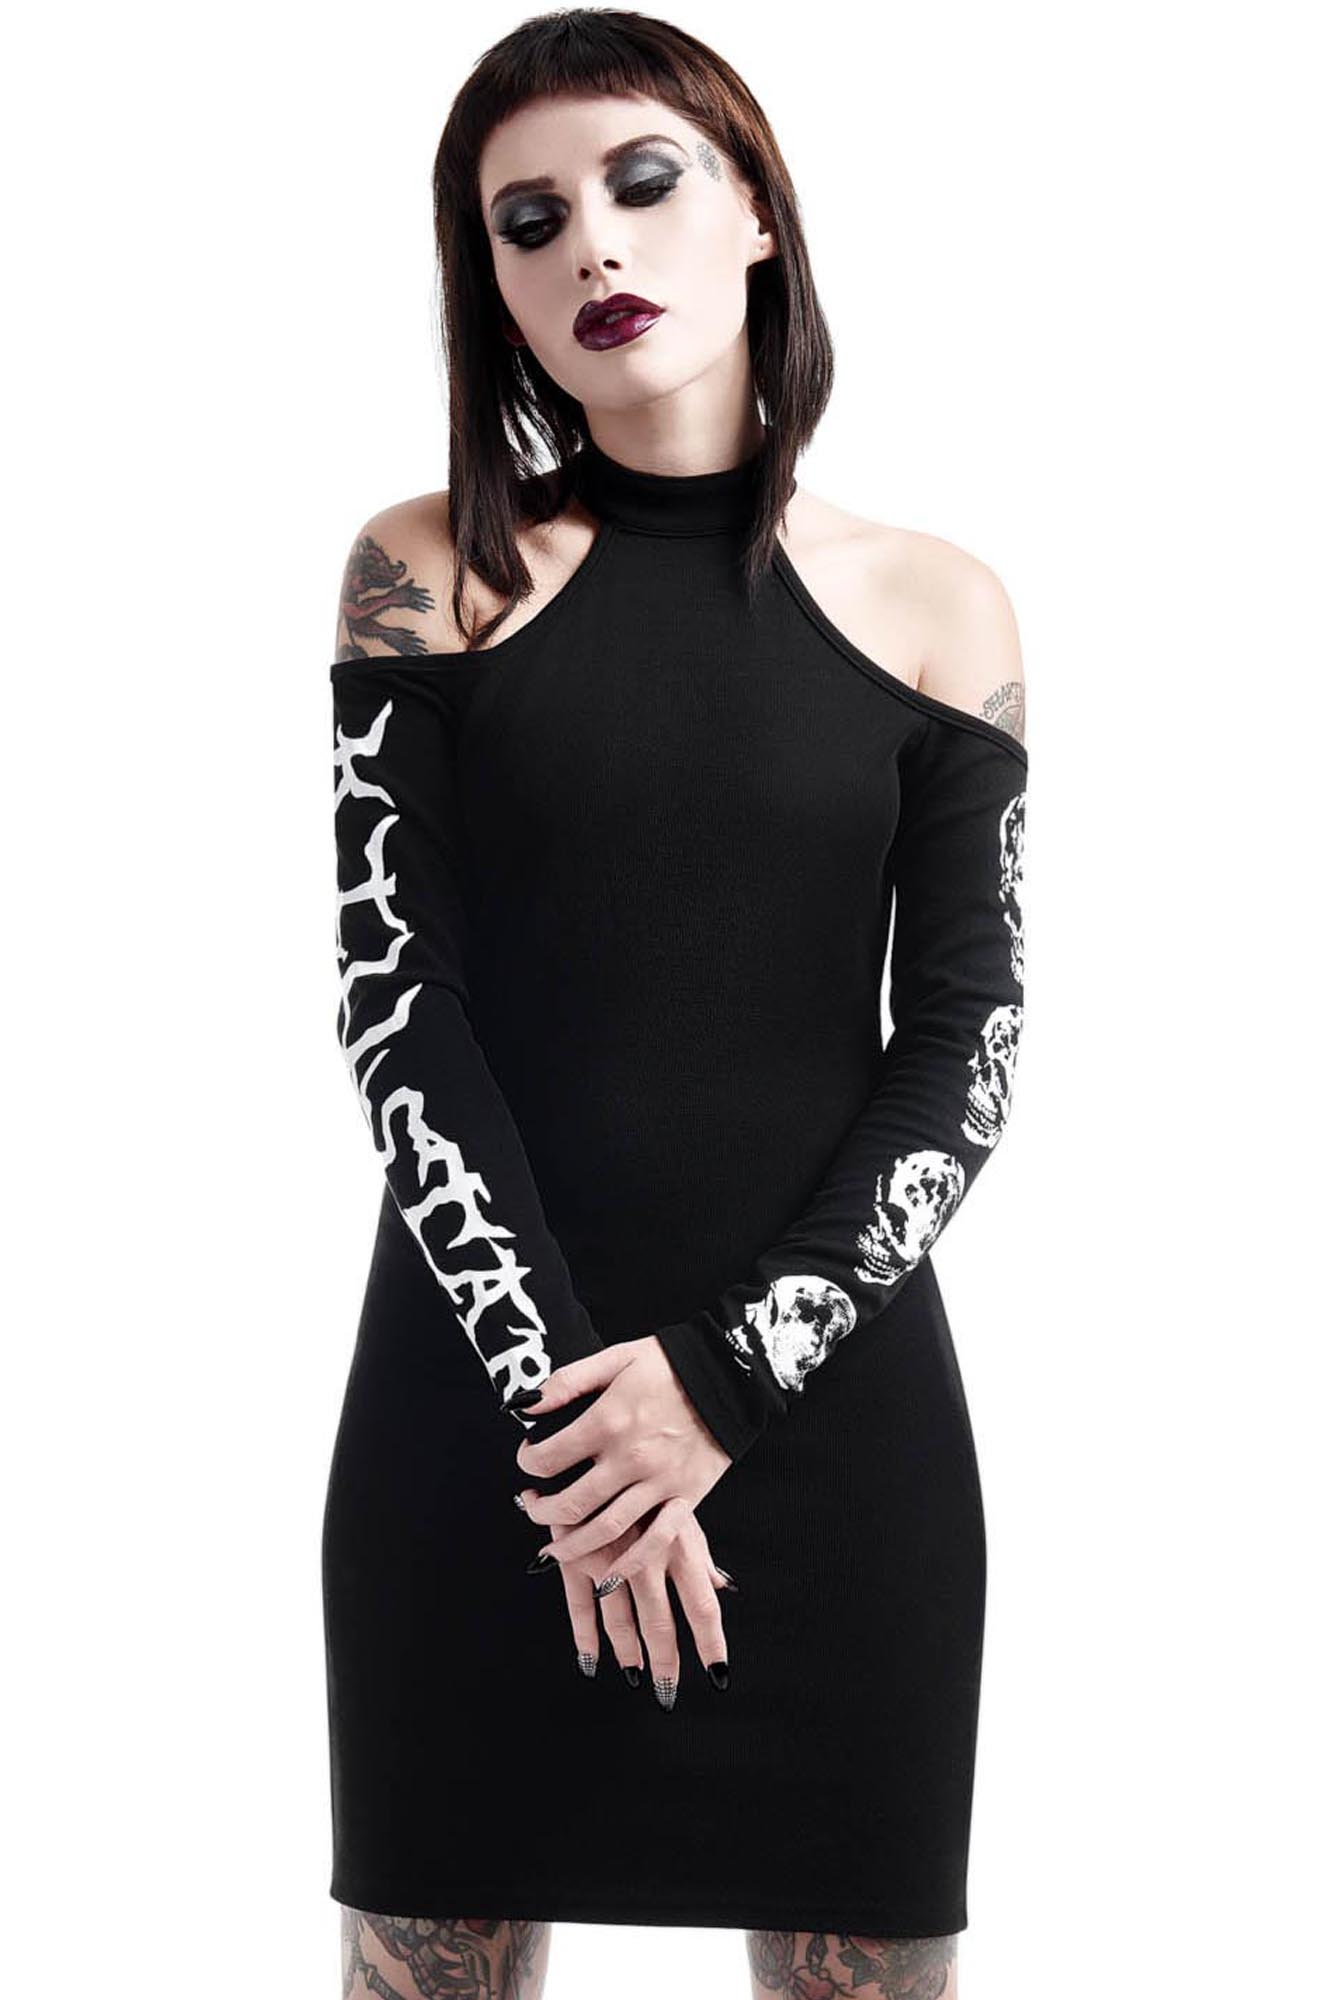 luna morte bodycon dress b killstar us store. Black Bedroom Furniture Sets. Home Design Ideas